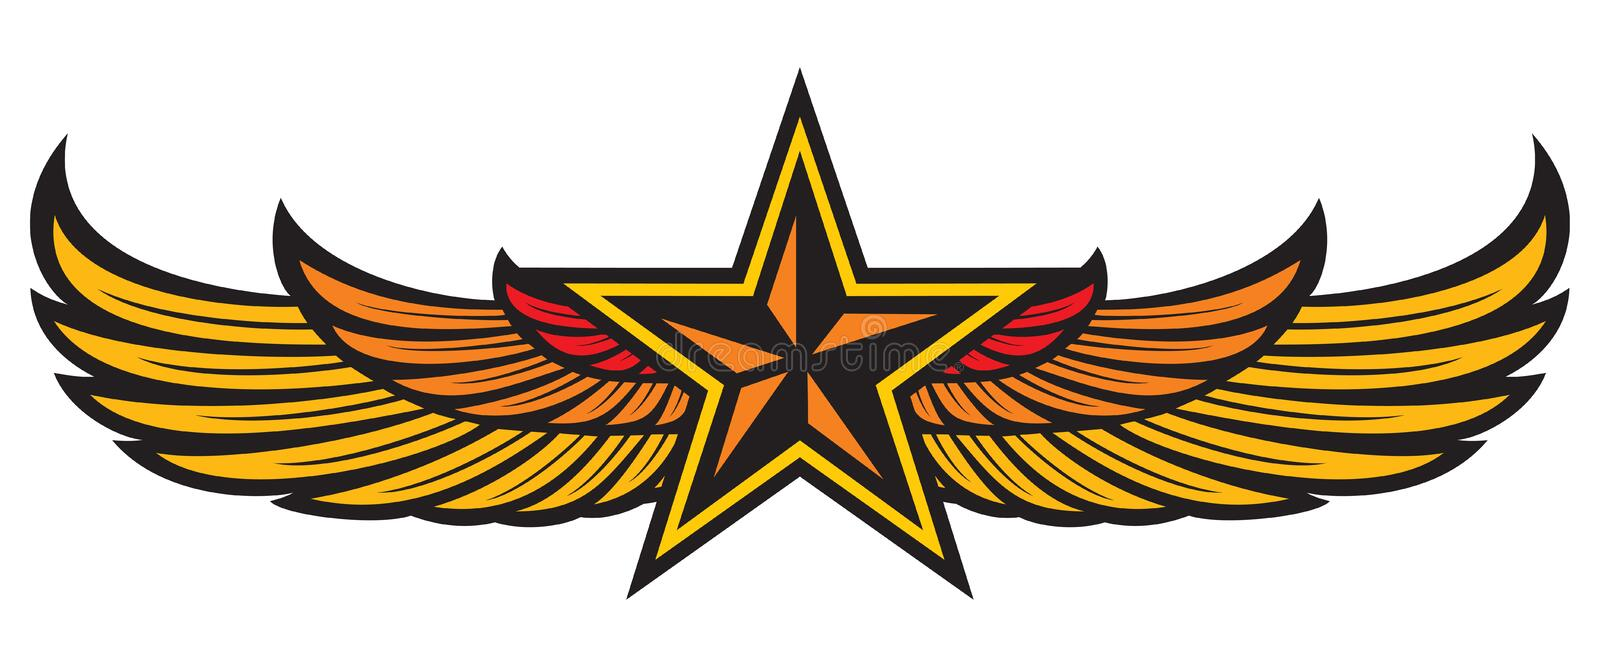 Star and wings. Eagle wings, yellow star badge royalty free illustration